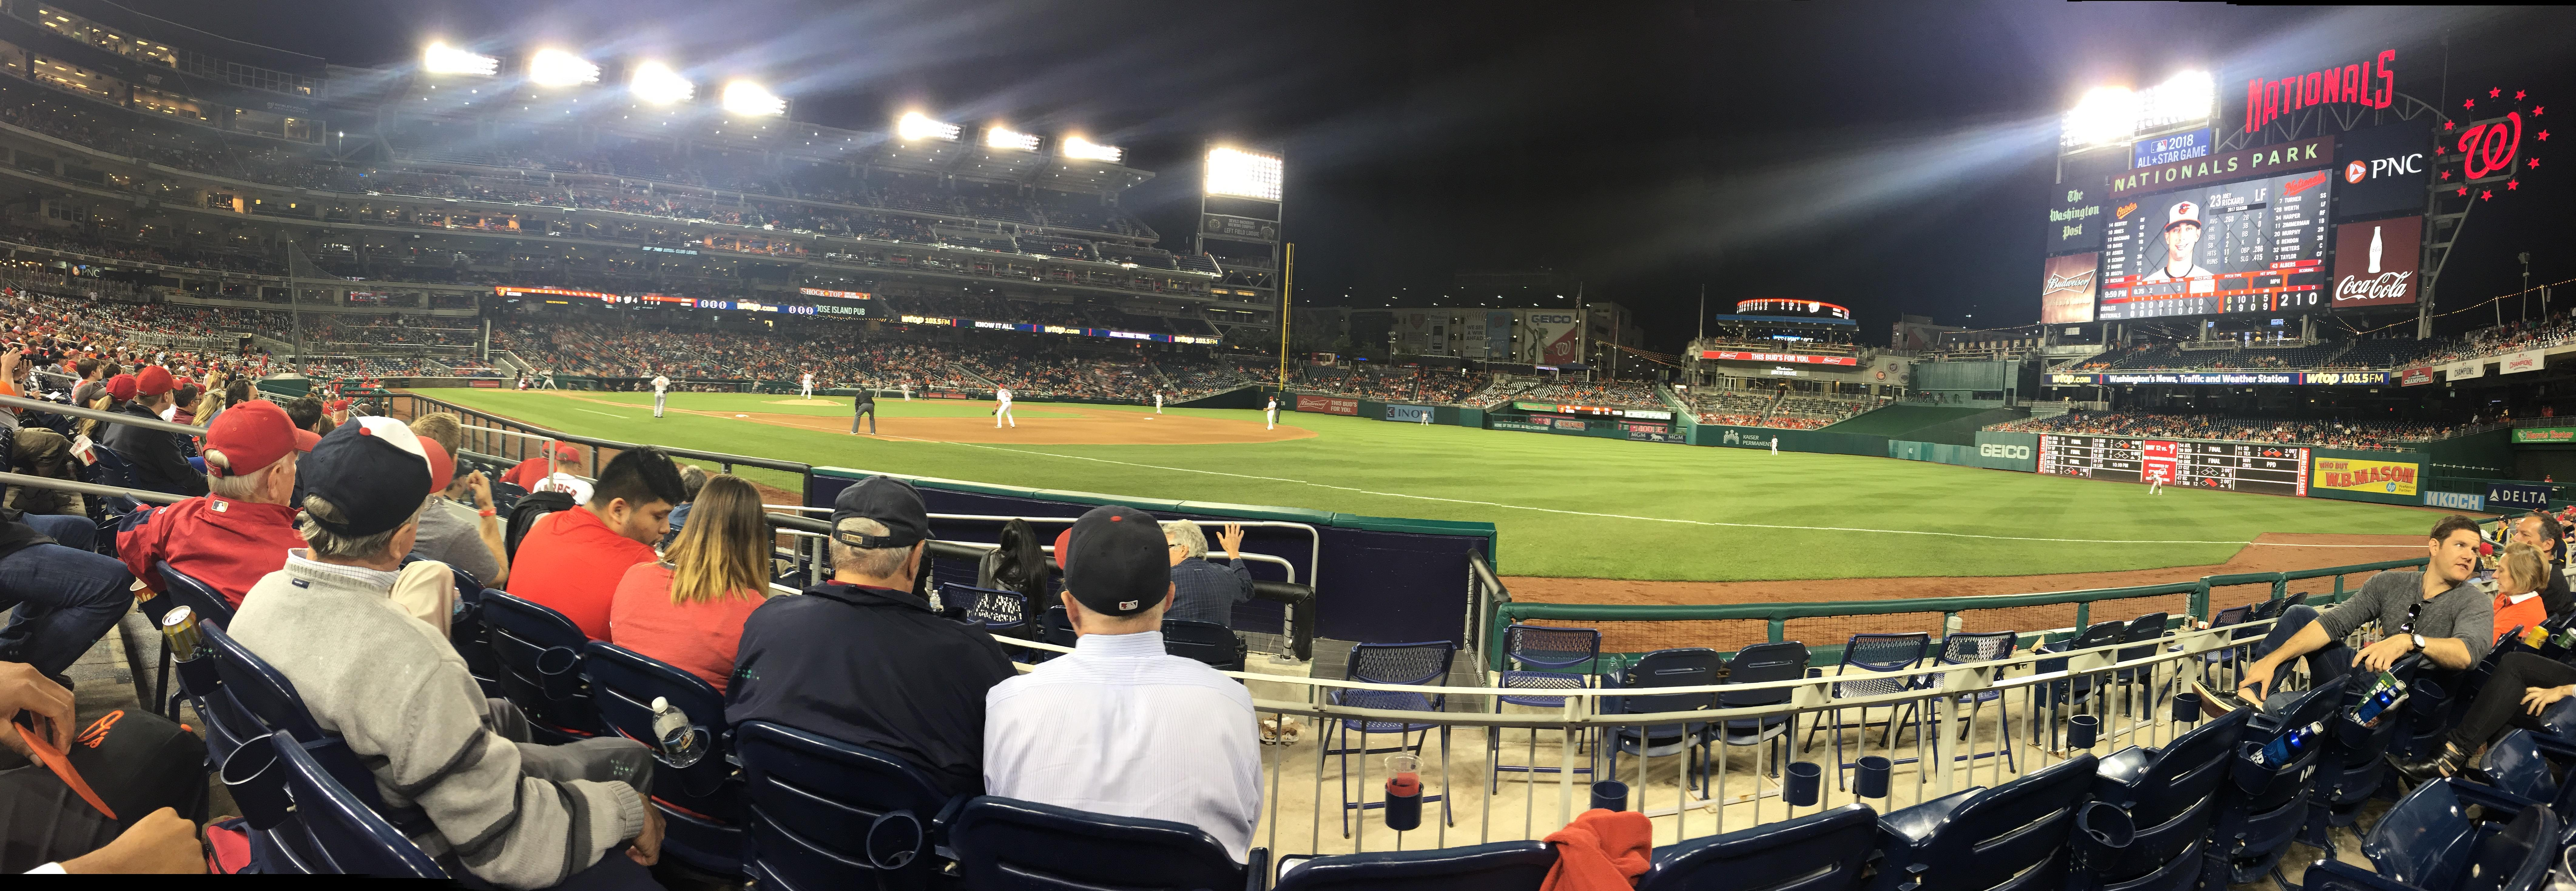 Nationals Park Section 133 Row F Seat 13